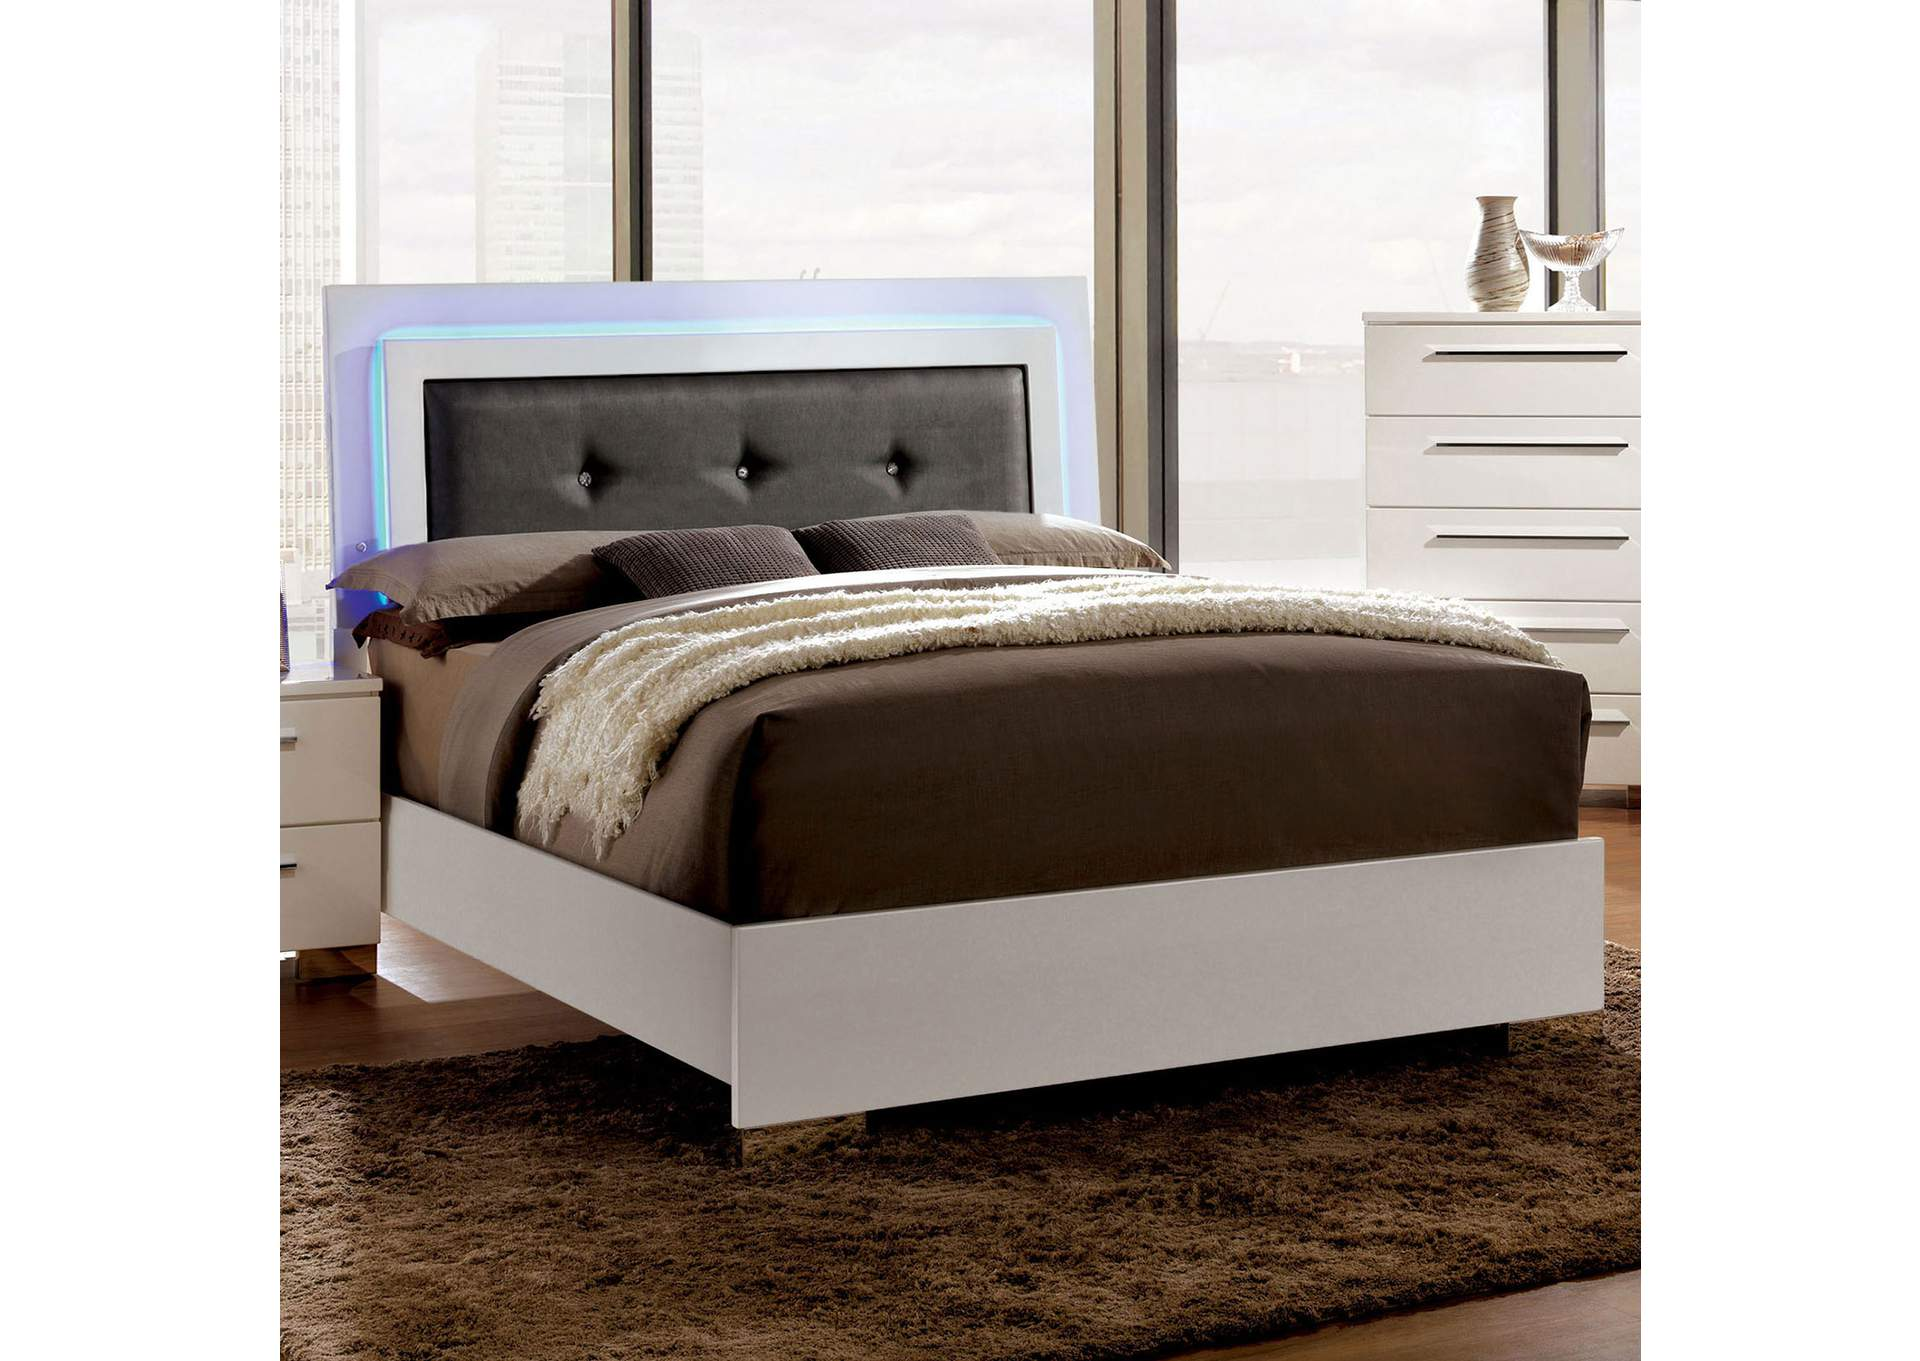 Furniture ville bronx ny white lacquer clementine for Furniture of america king bed